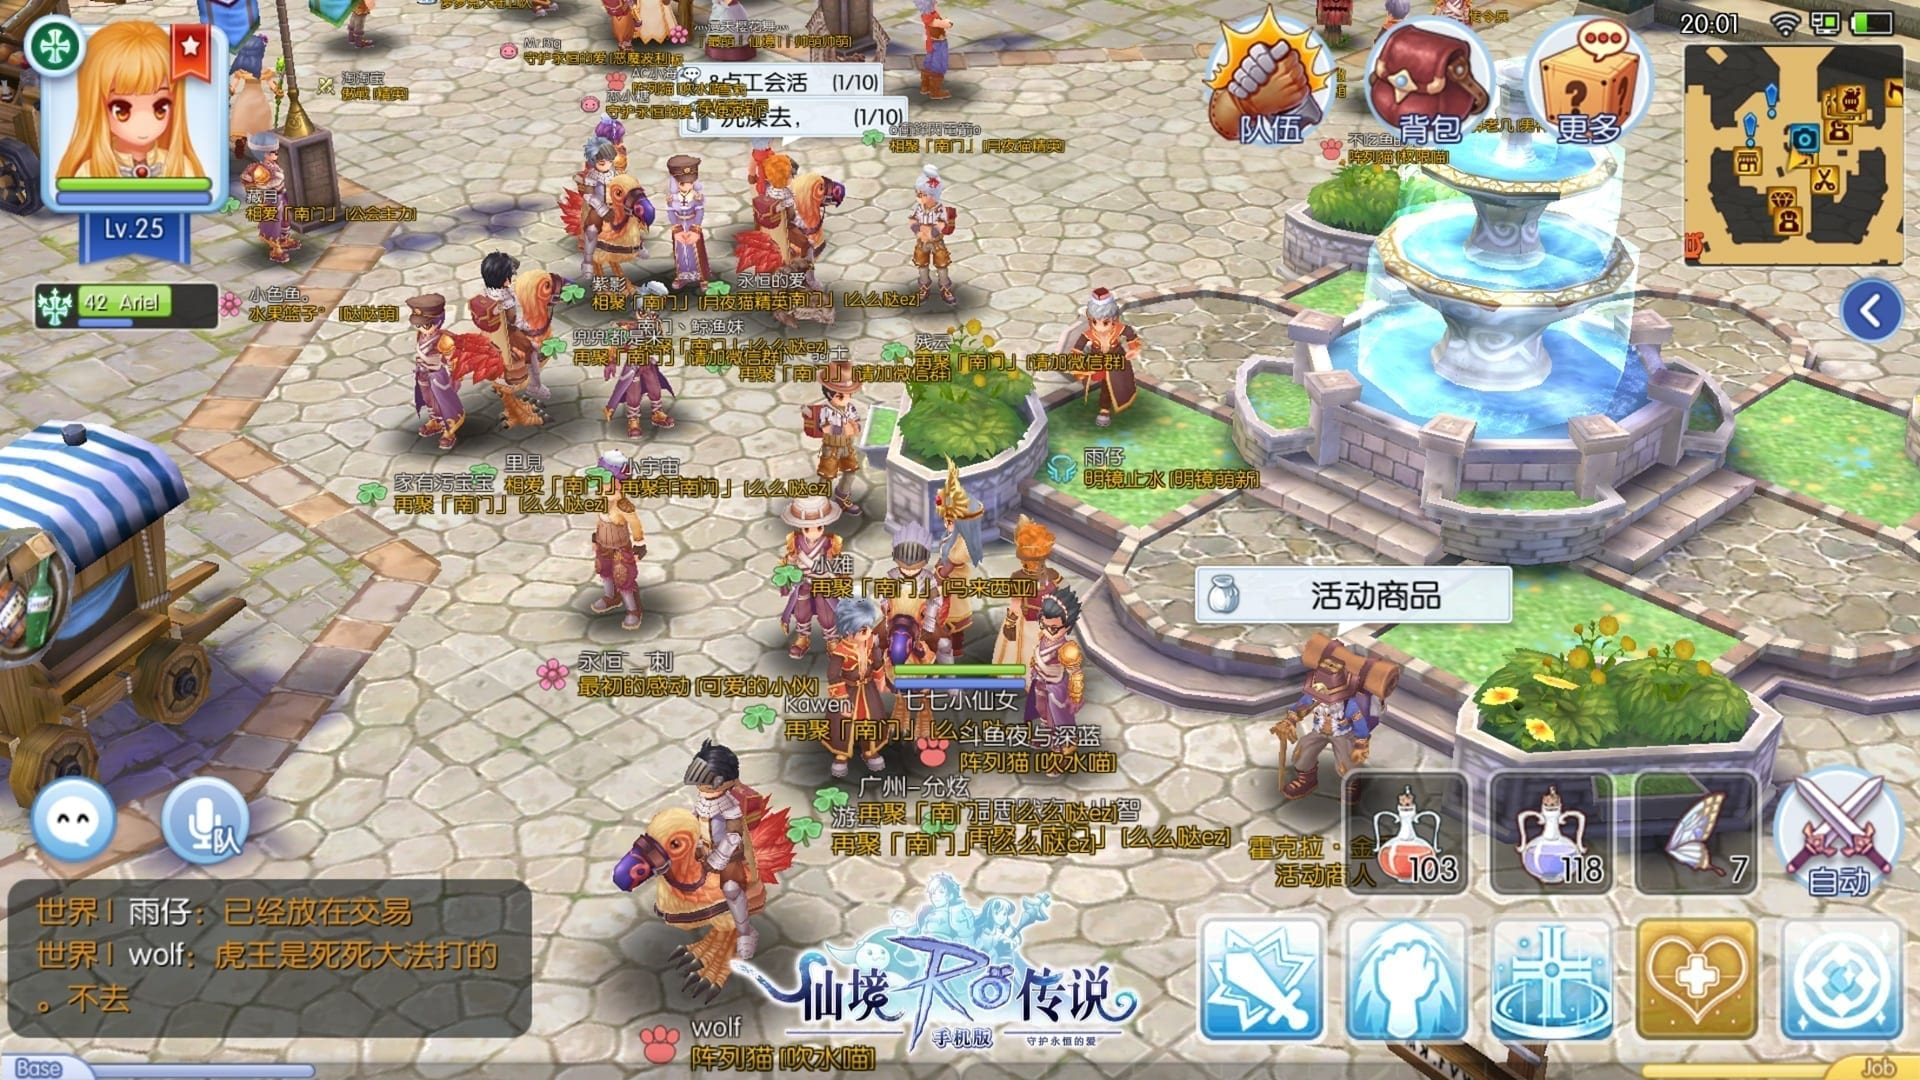 Hair Style Quest Ragnarok Mobile: Launch Date Announced For Mobile RPG